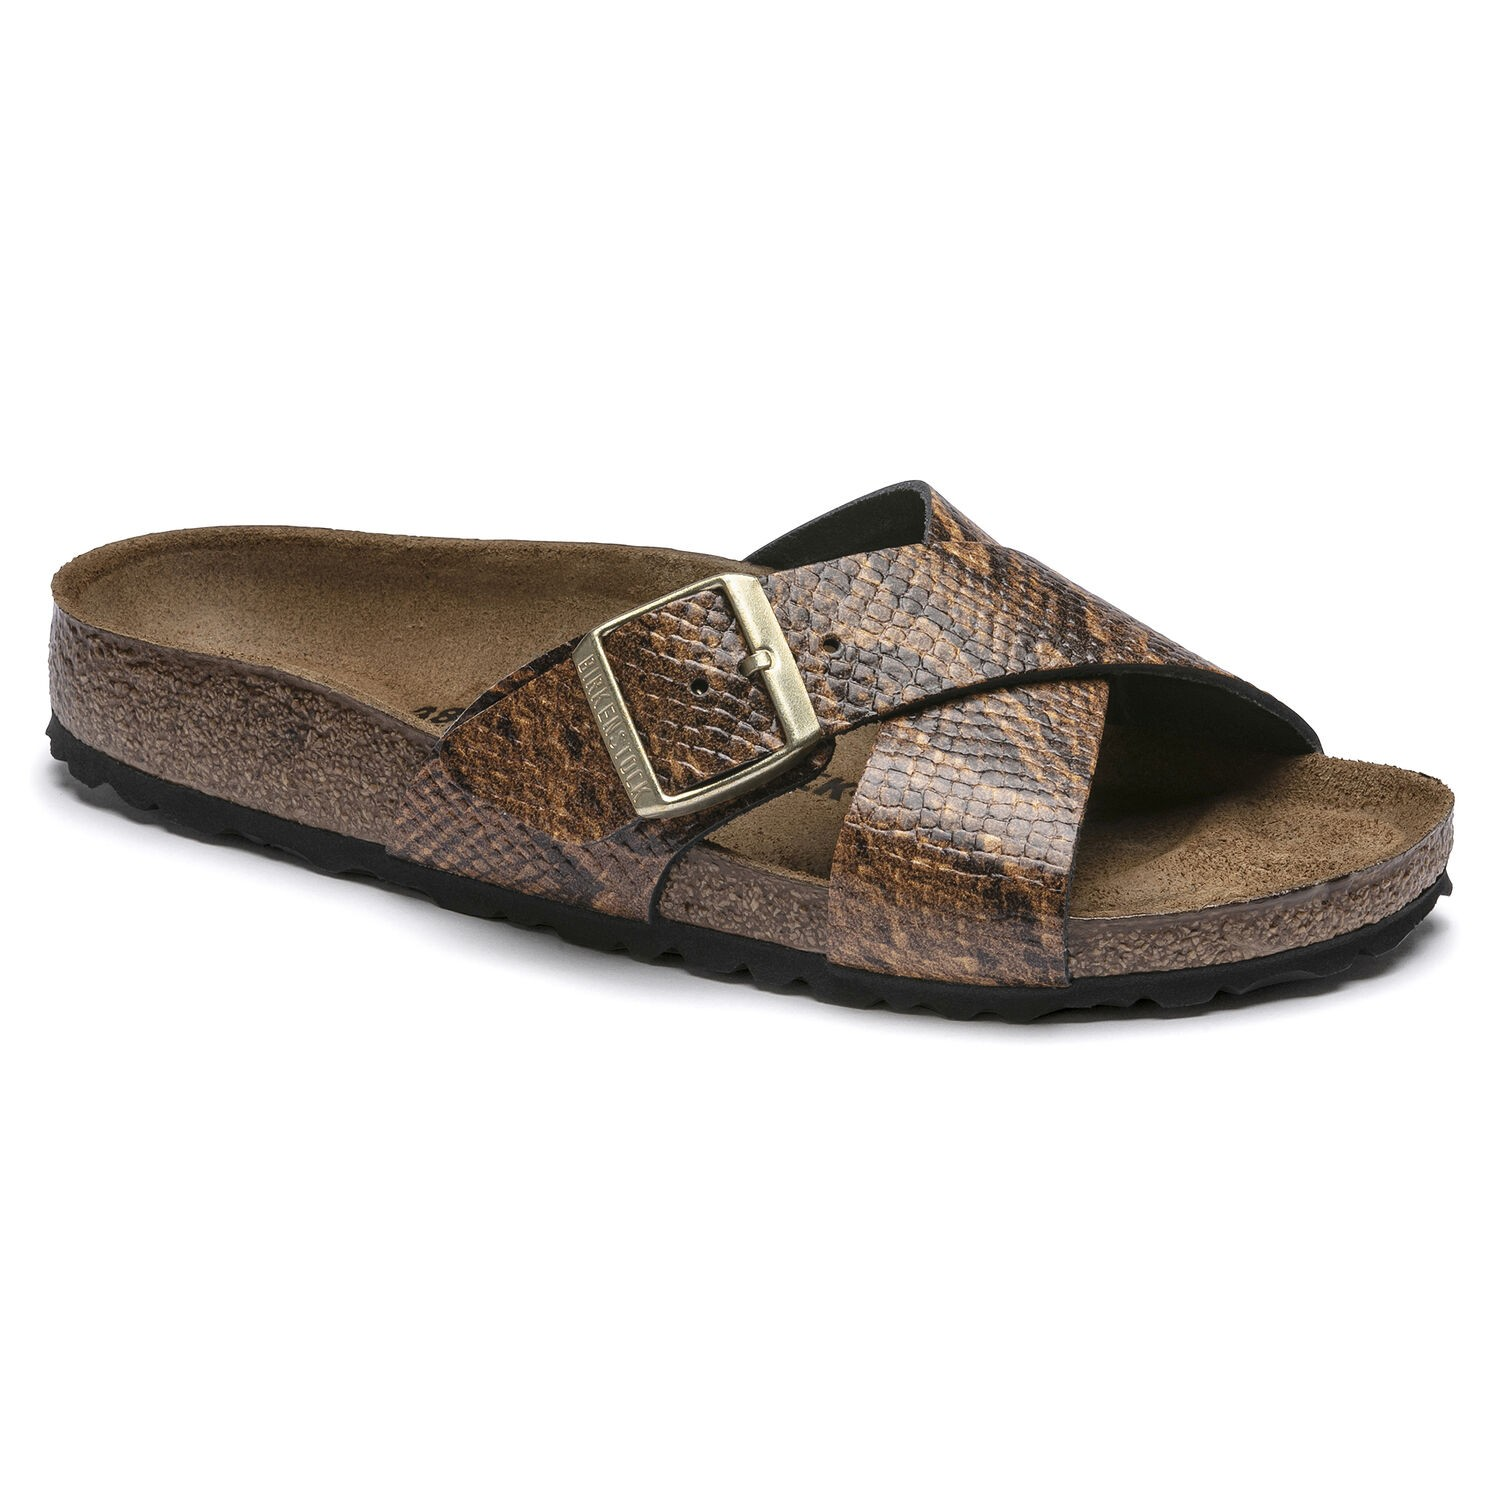 Birkenstock Siena NL Snake Brown Narrow